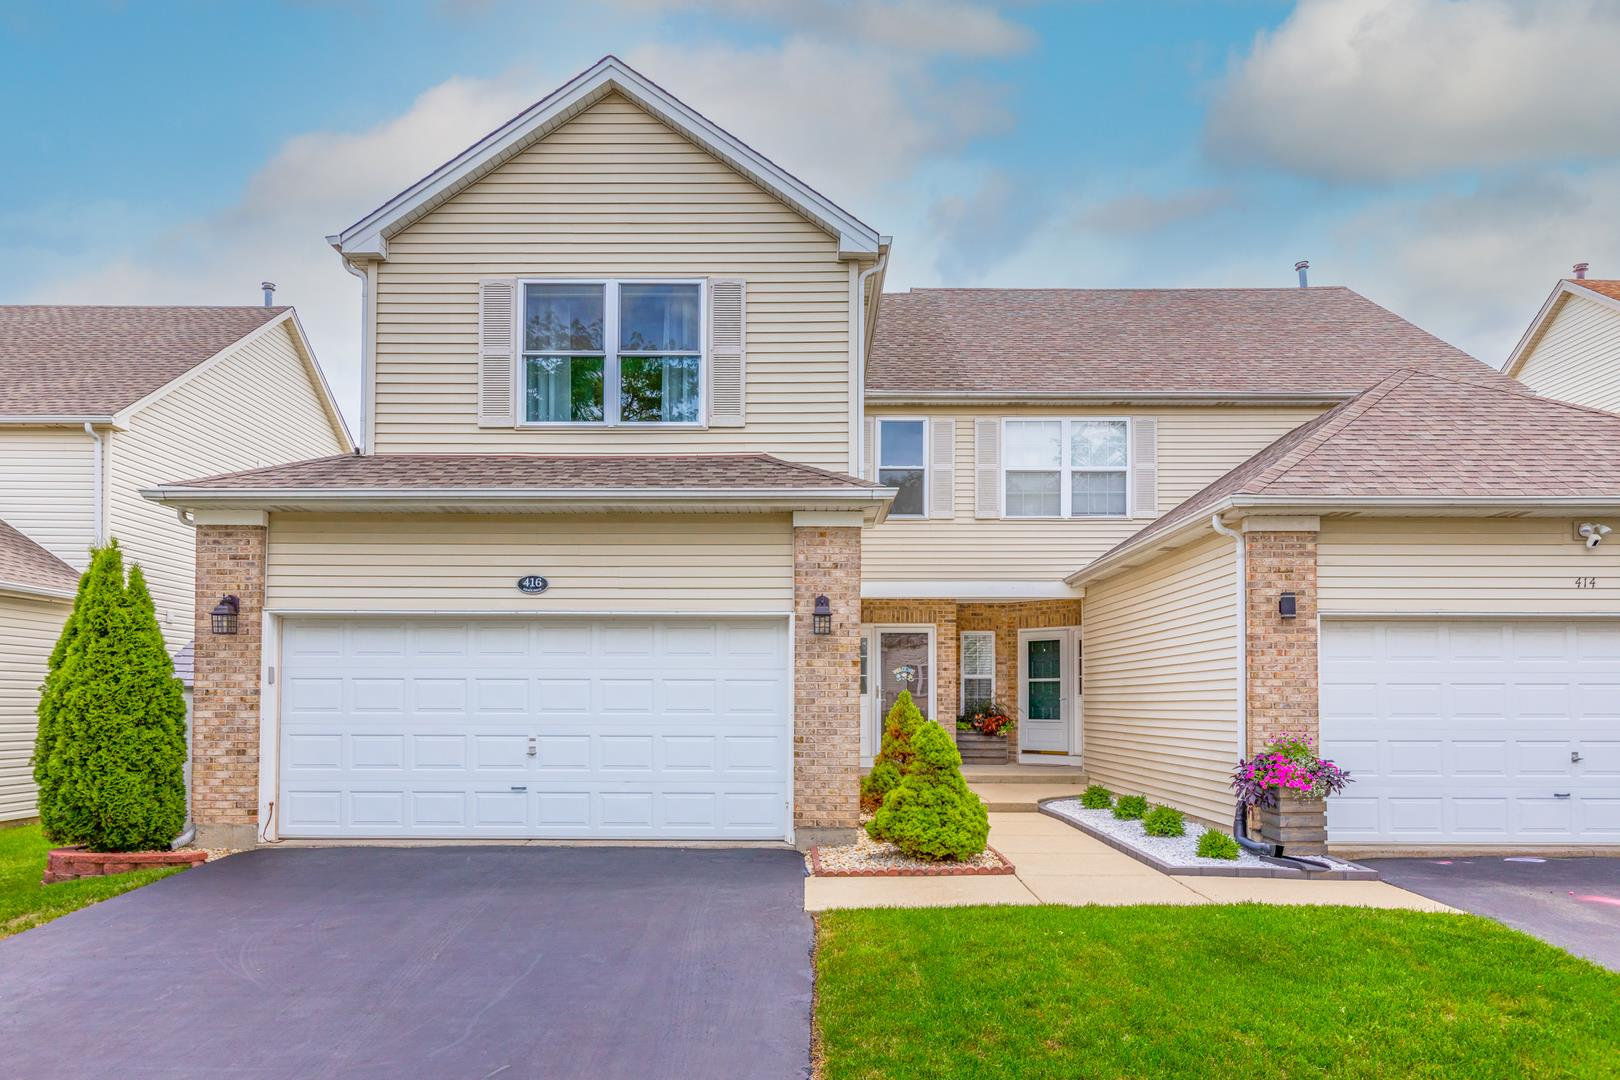 416 Grace Drive #416, Lake in the Hills, IL 60156 - #: 11158217